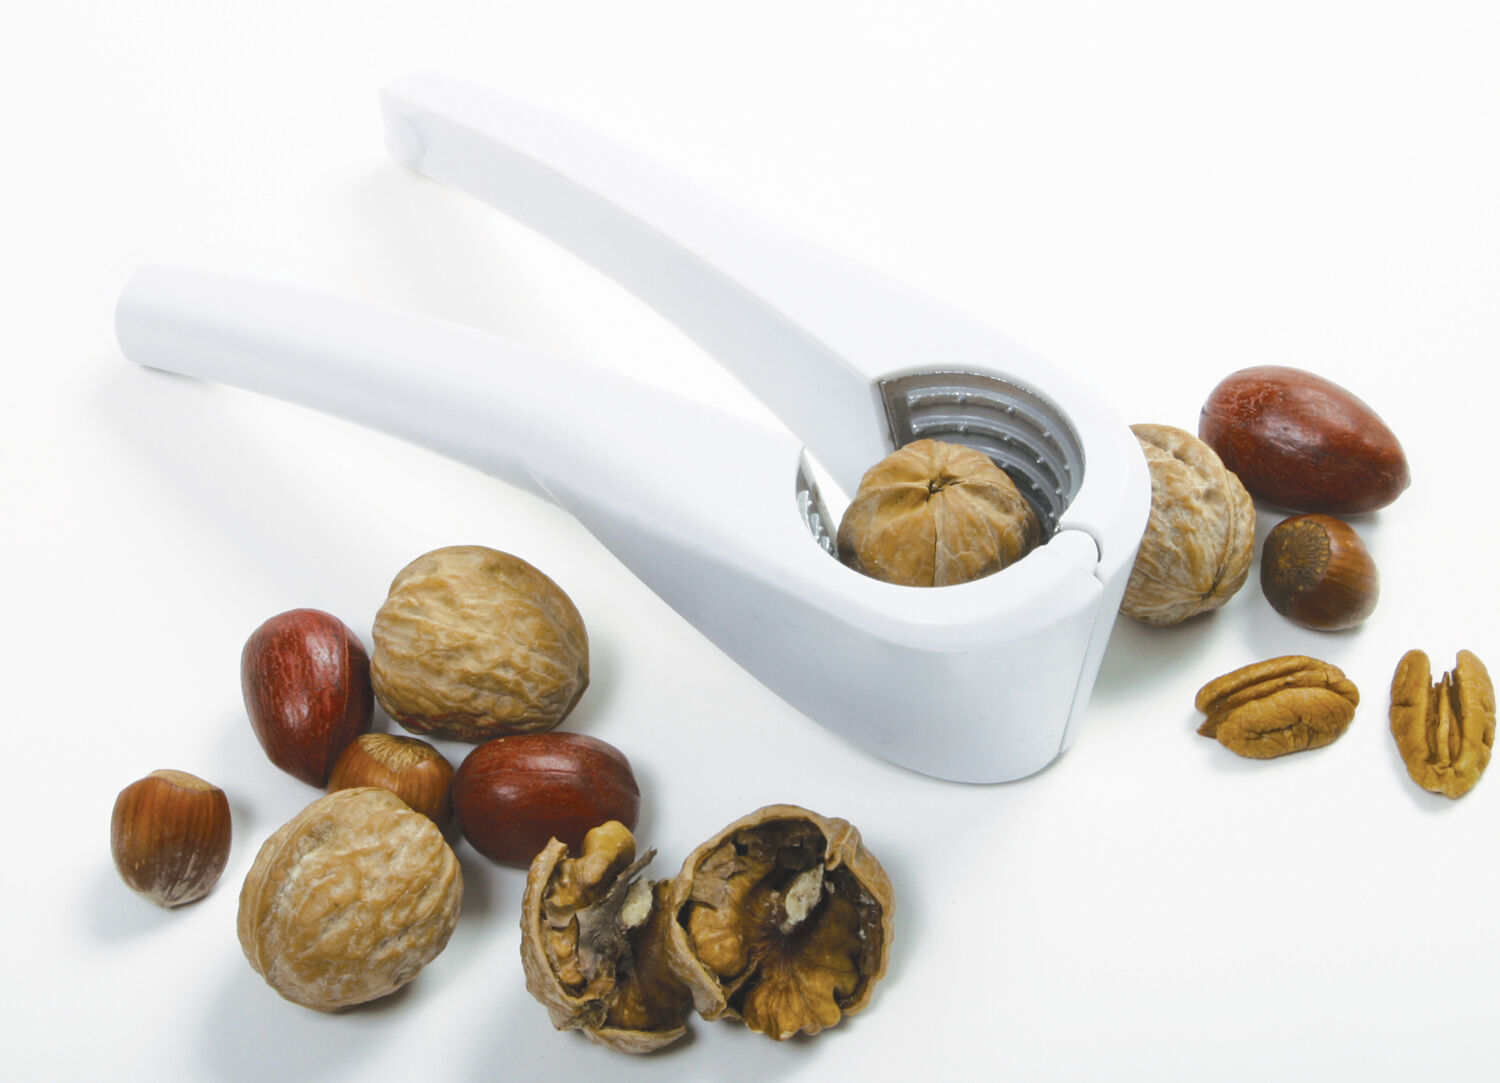 Norpro Deluxe Nutcracker - Walnut Almond Pecan Hazelnut Hand Nut Cracker Sheller on Sale